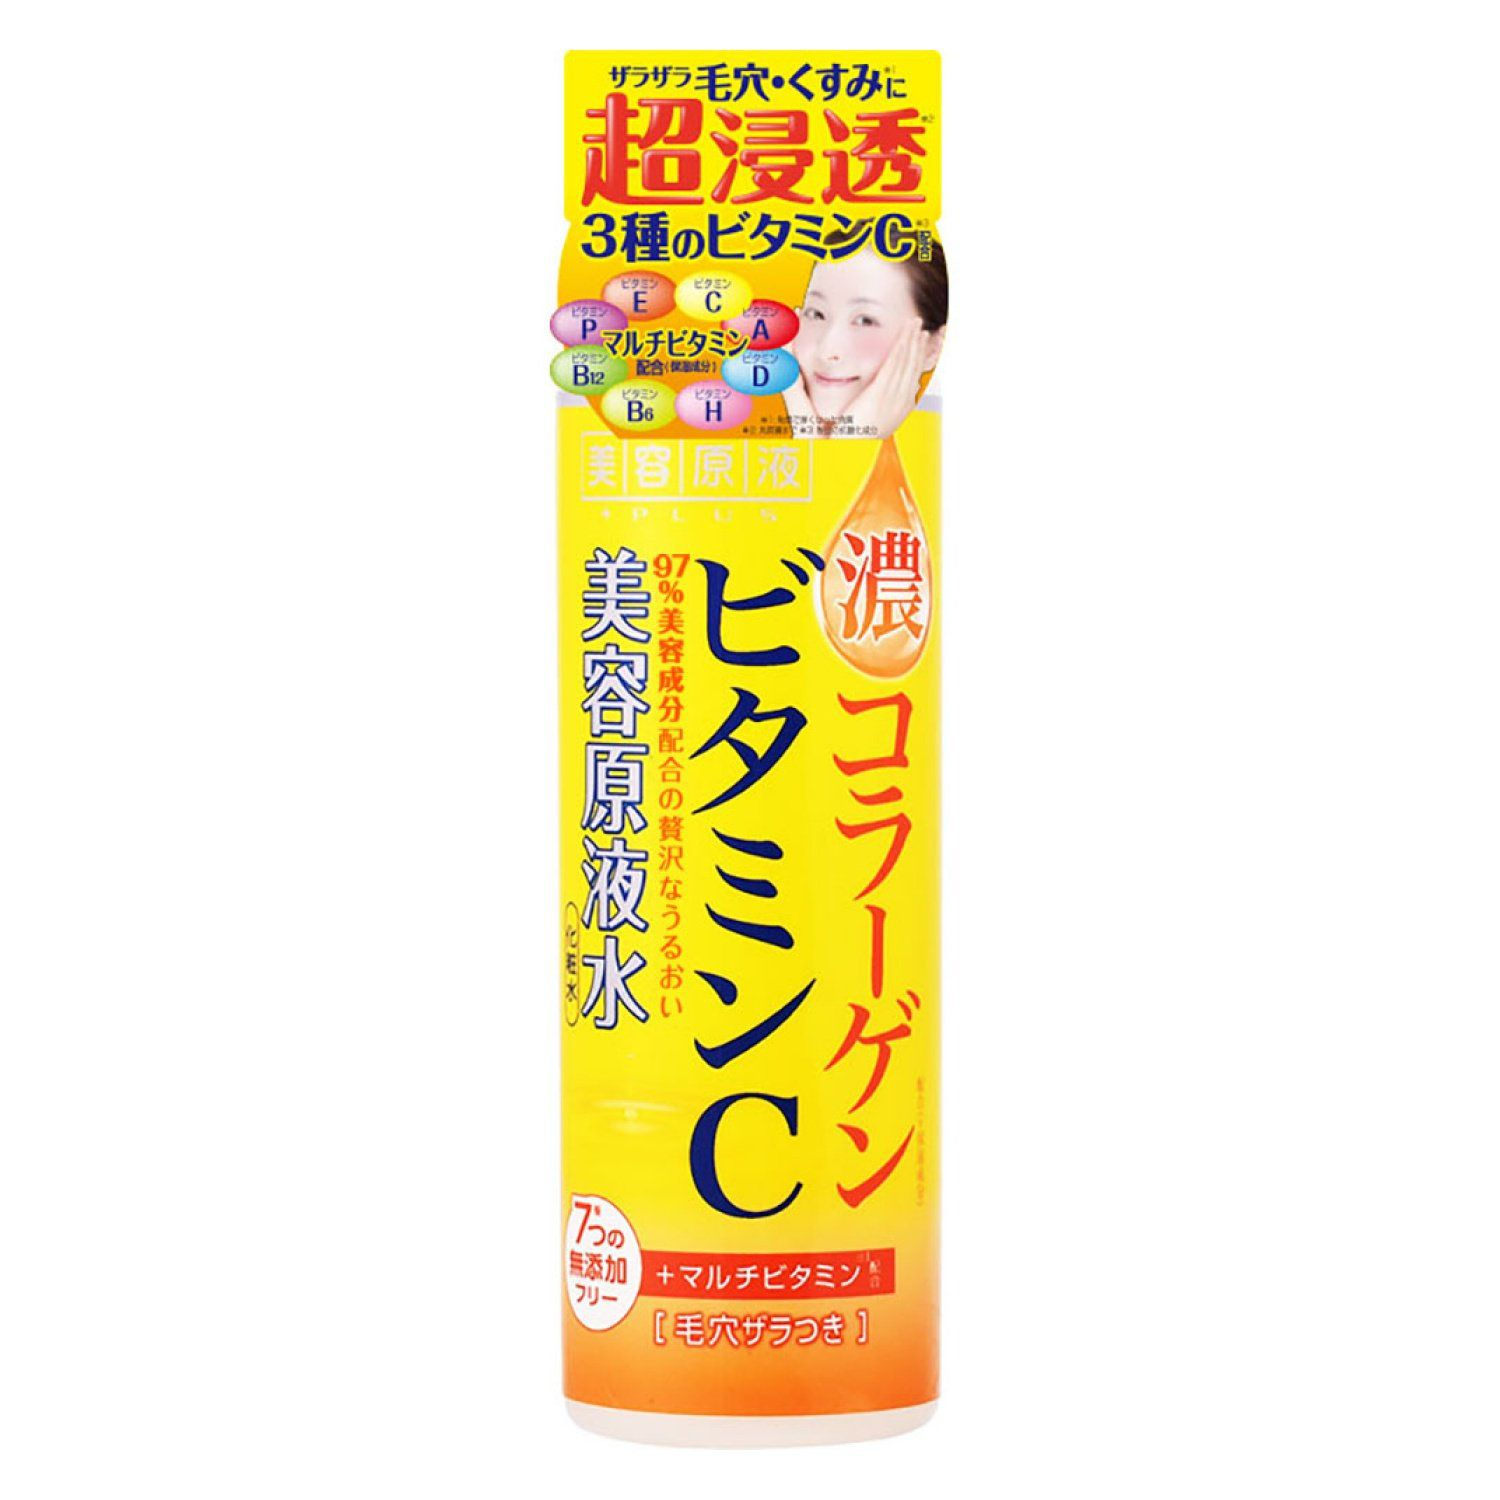 Ultra-Jun Beauty Stock Solution Vitamin C + Collagen Lotion 185ml